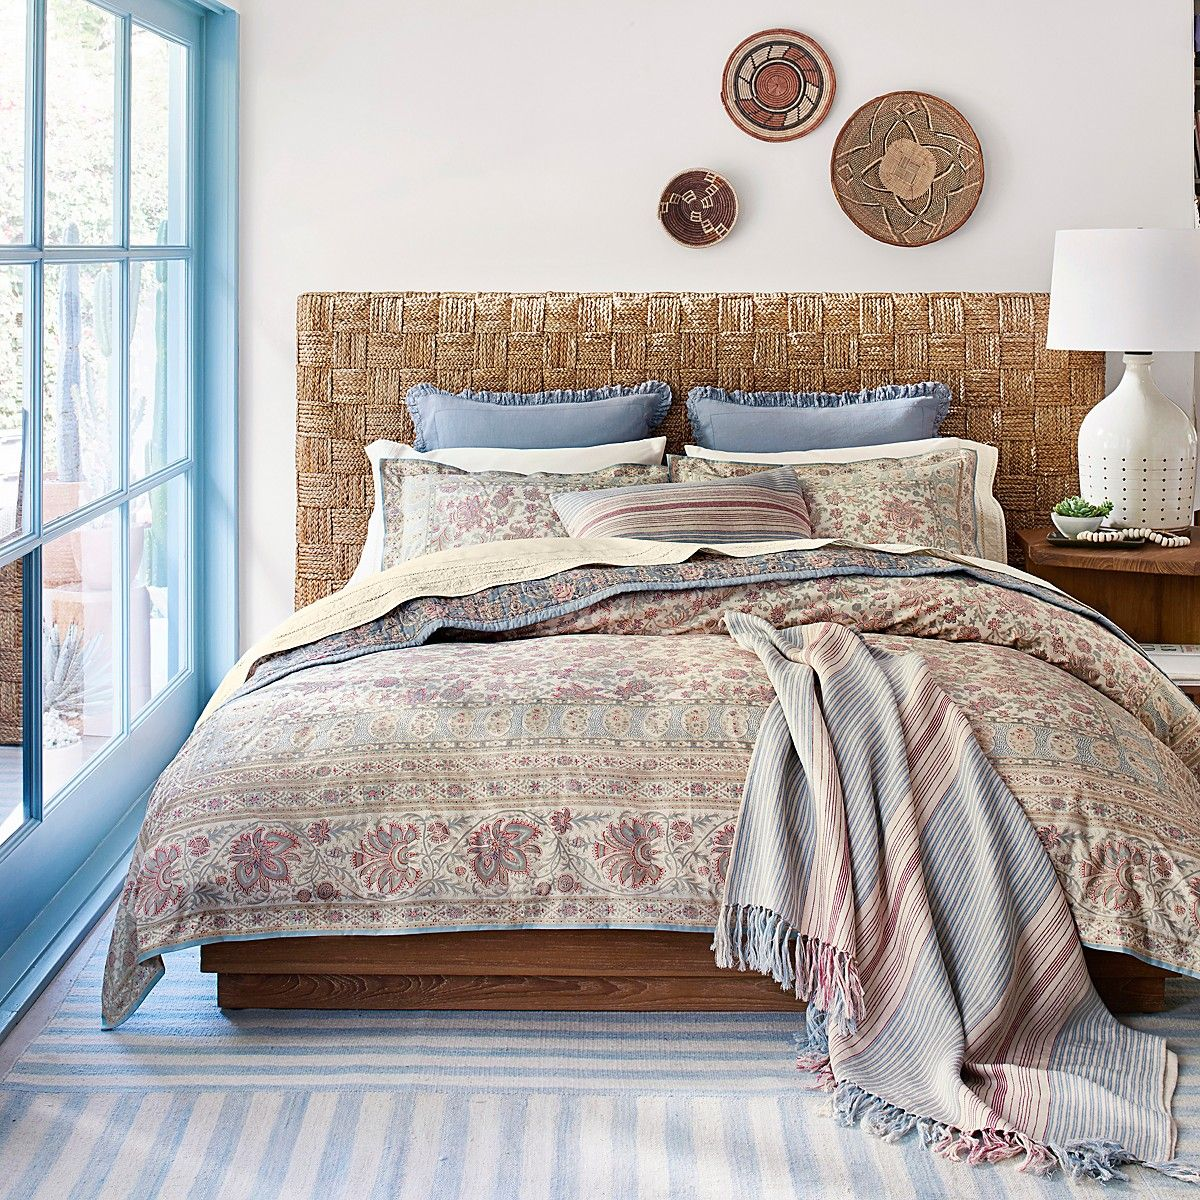 ralph lauren half moon bay bedding collection - 100% exclusive